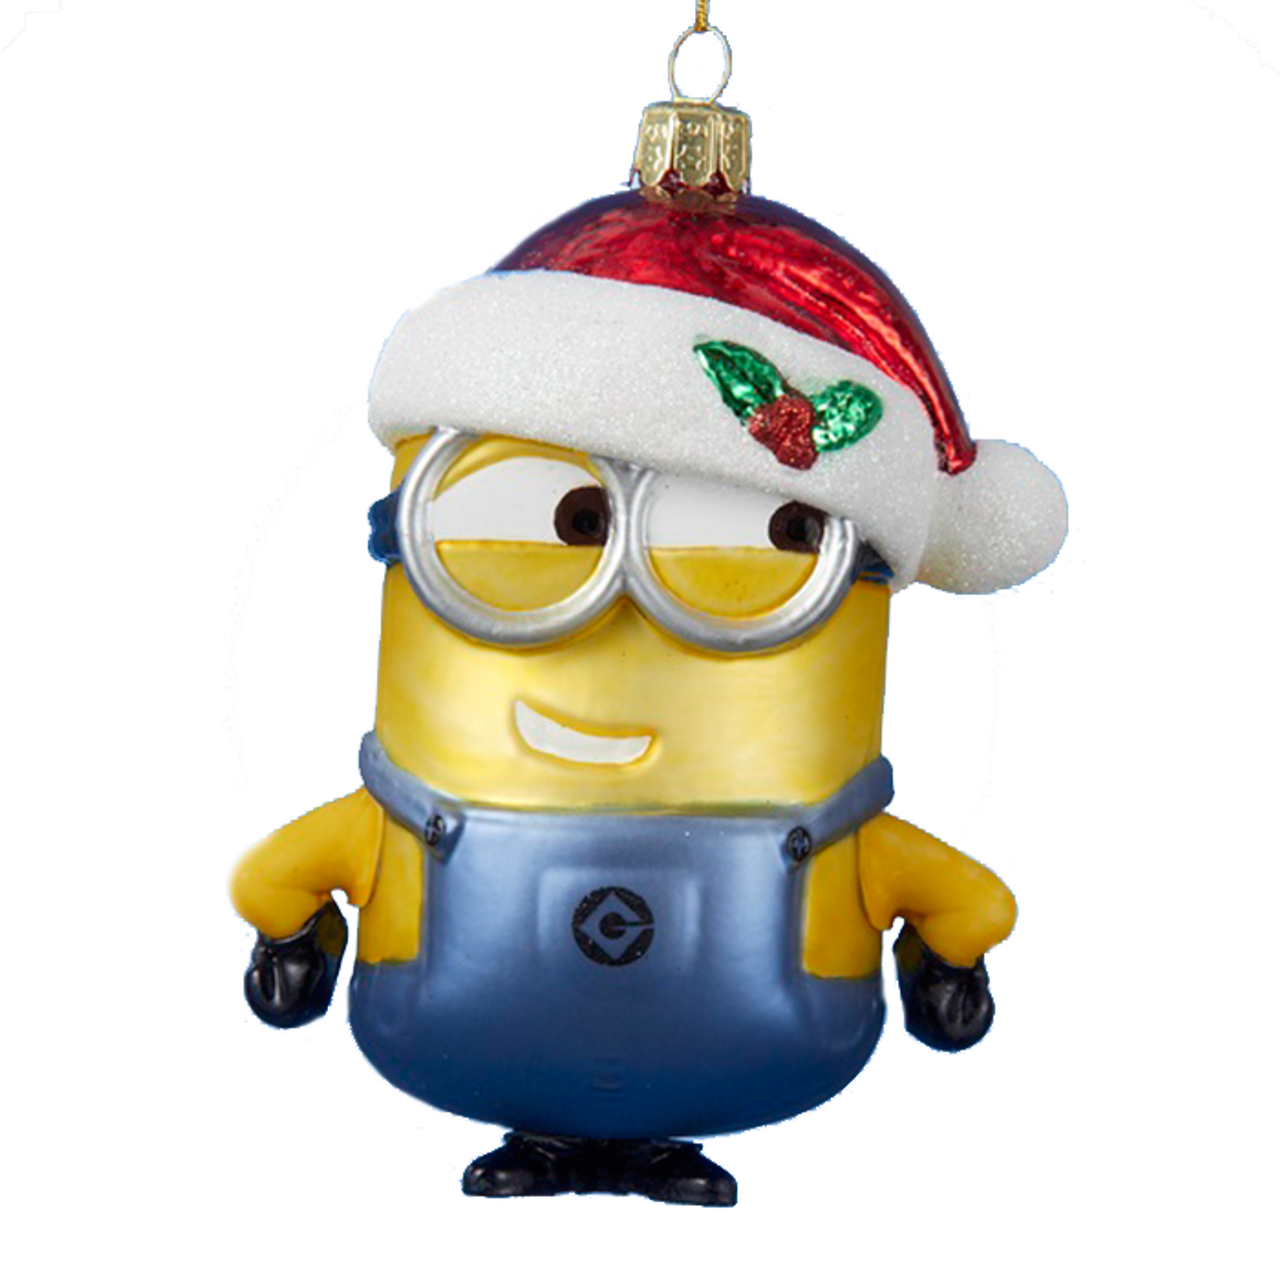 Despicable Me Minion 5-Inch Glass Holiday Ornament. - Despicable Me Minion Glass Christmas Ornament - RetroFestive.ca